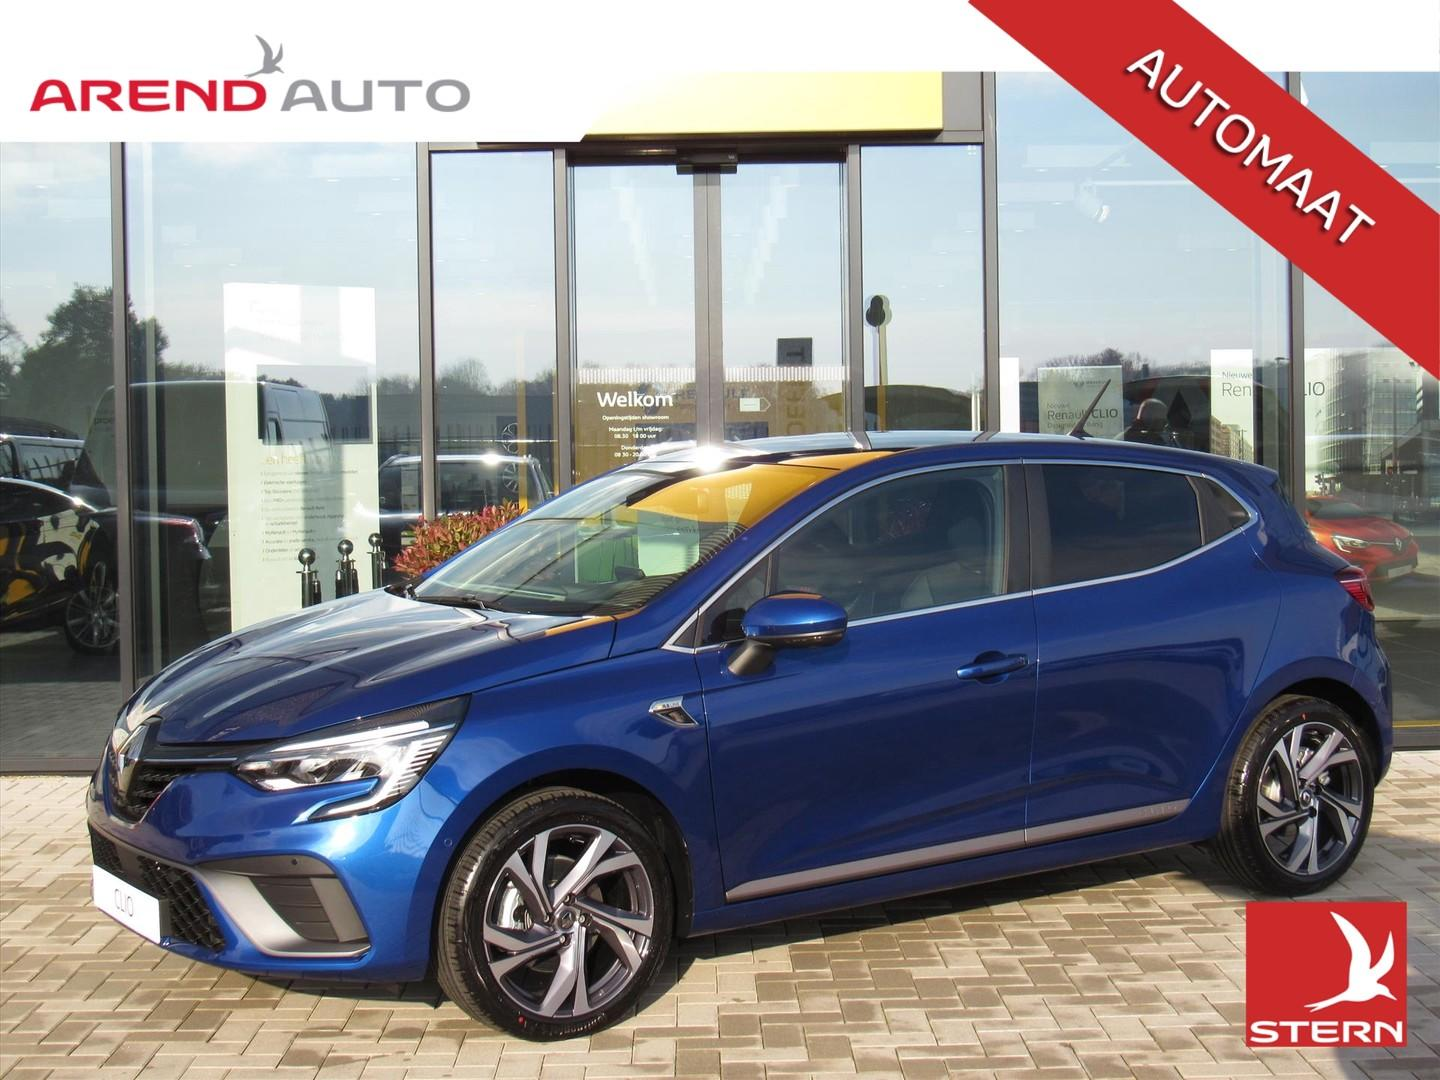 Renault Clio Tce 130 edc gpf r.s. line prive lease €514 pm obv 48 maanden 10.000 km per jaar